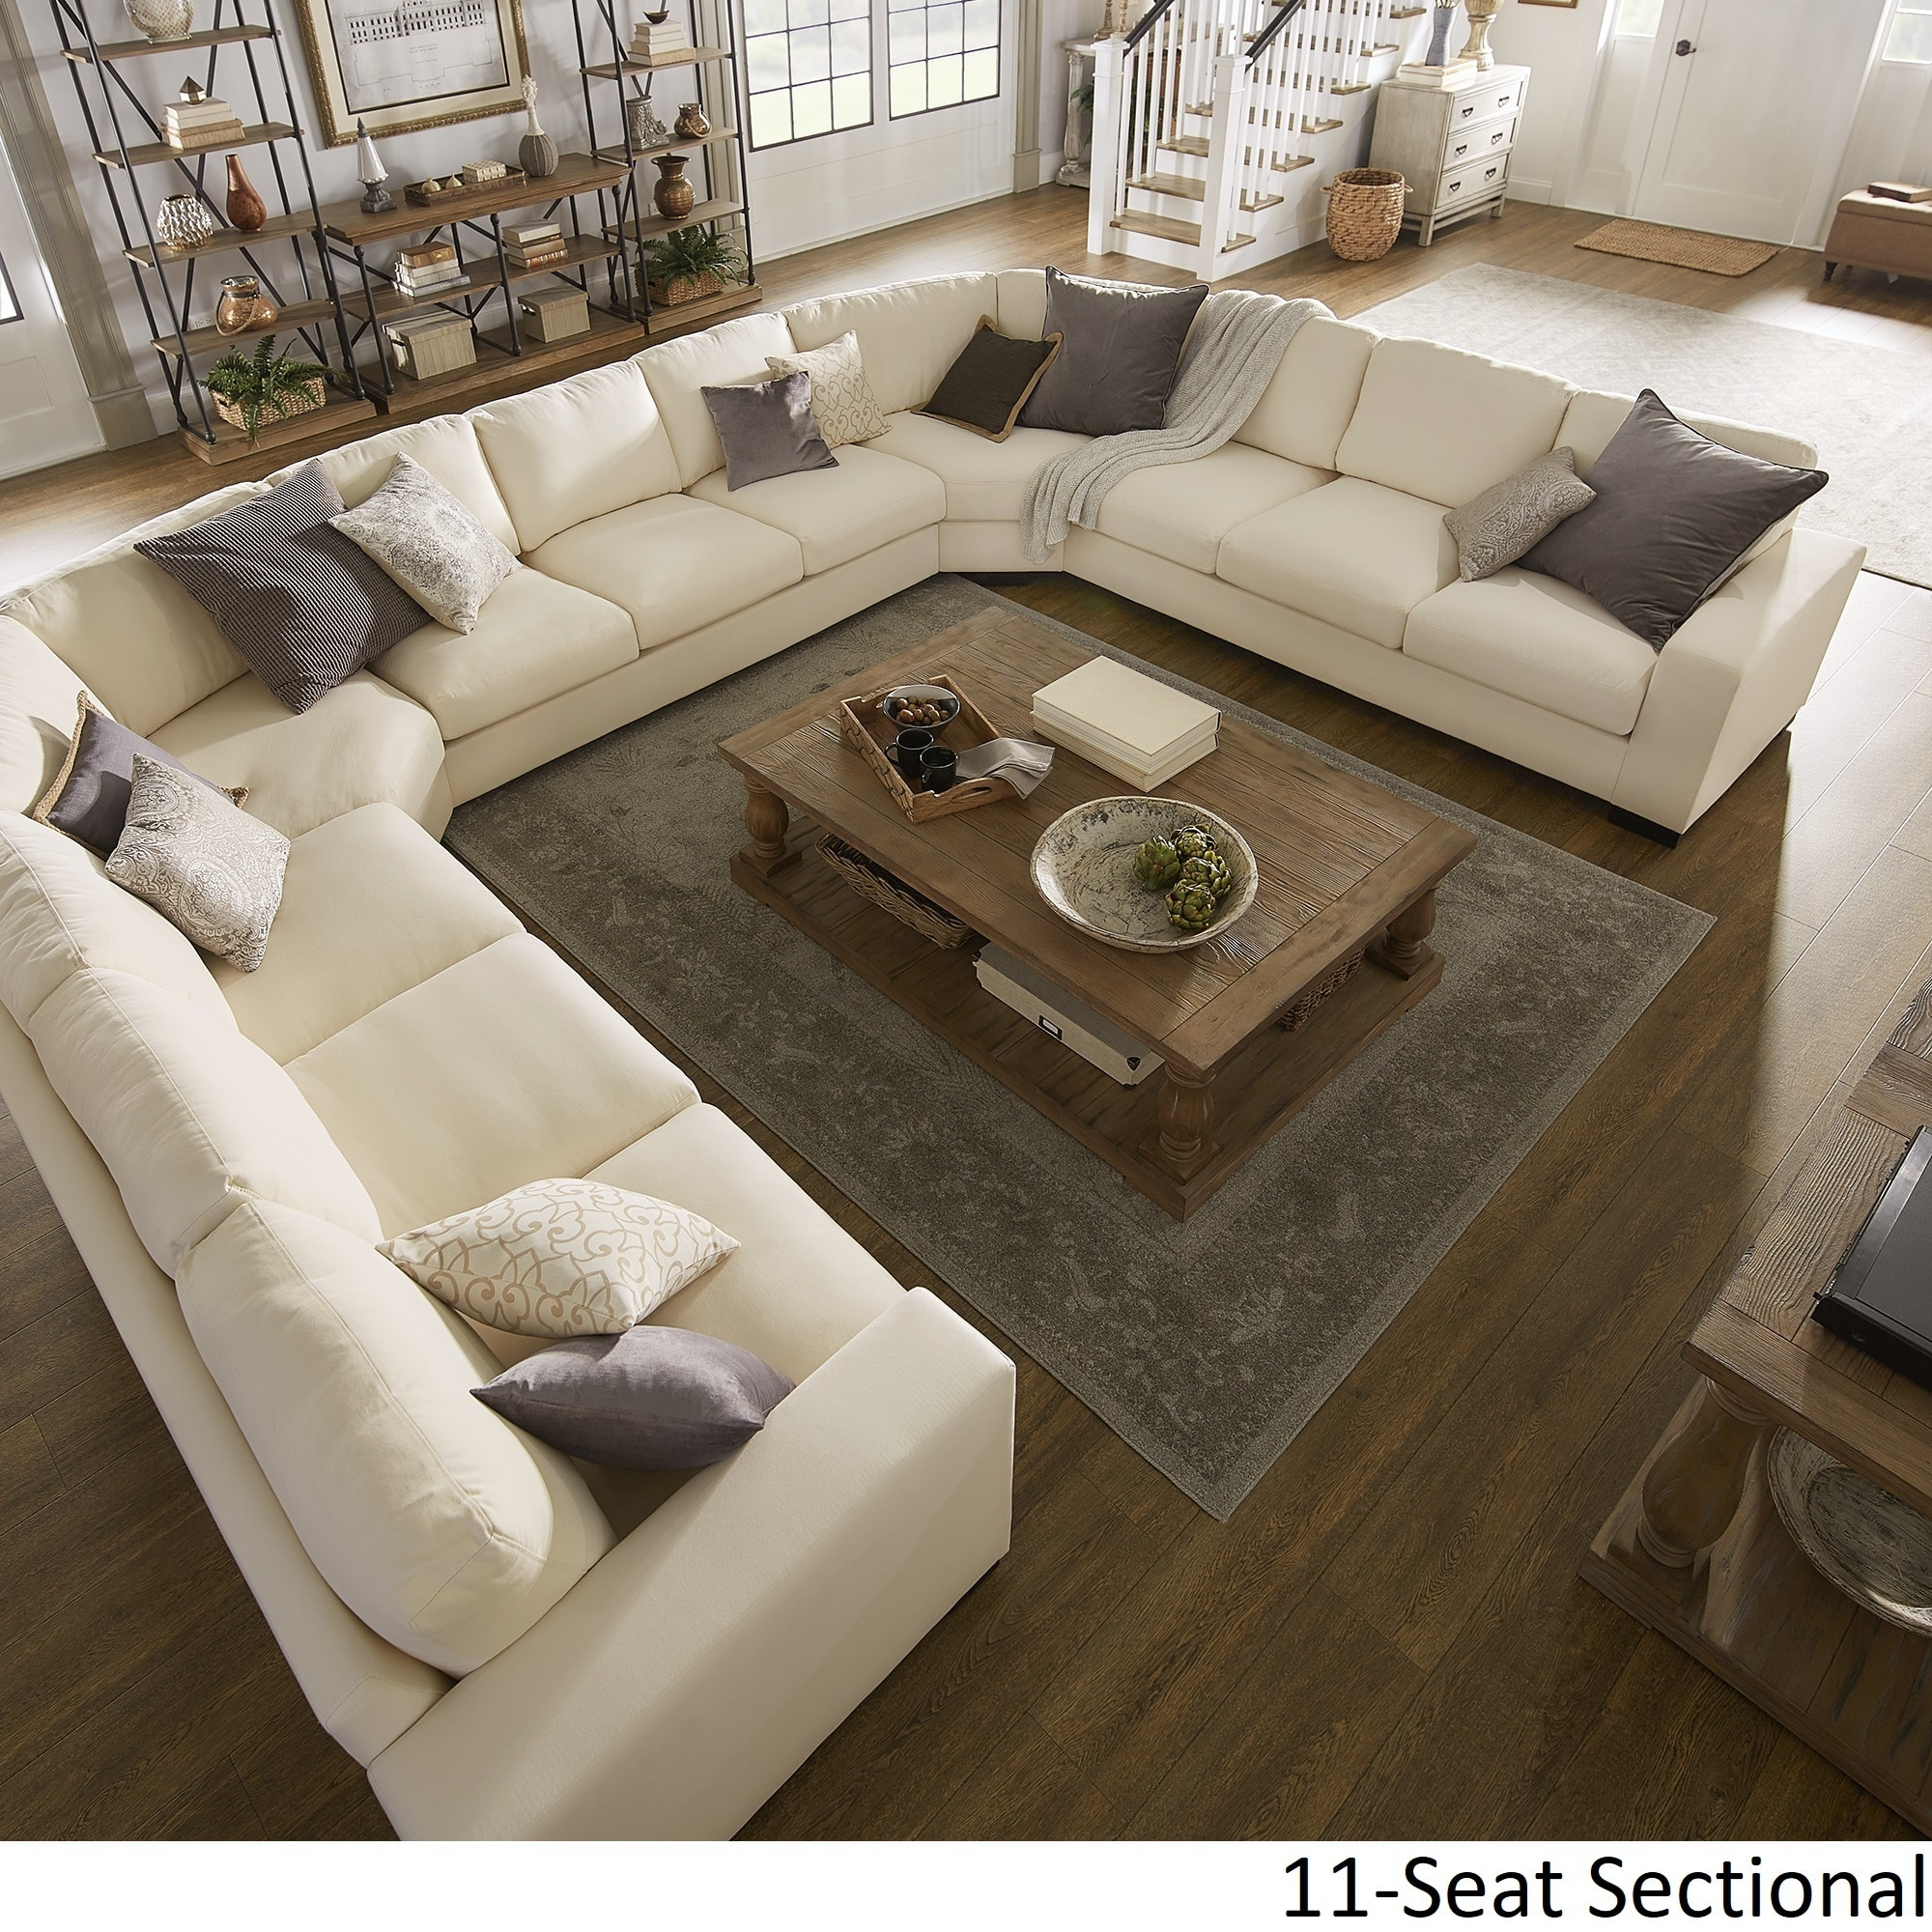 Lionel white cotton fabric down filled u shaped sectional by inspire q artisan